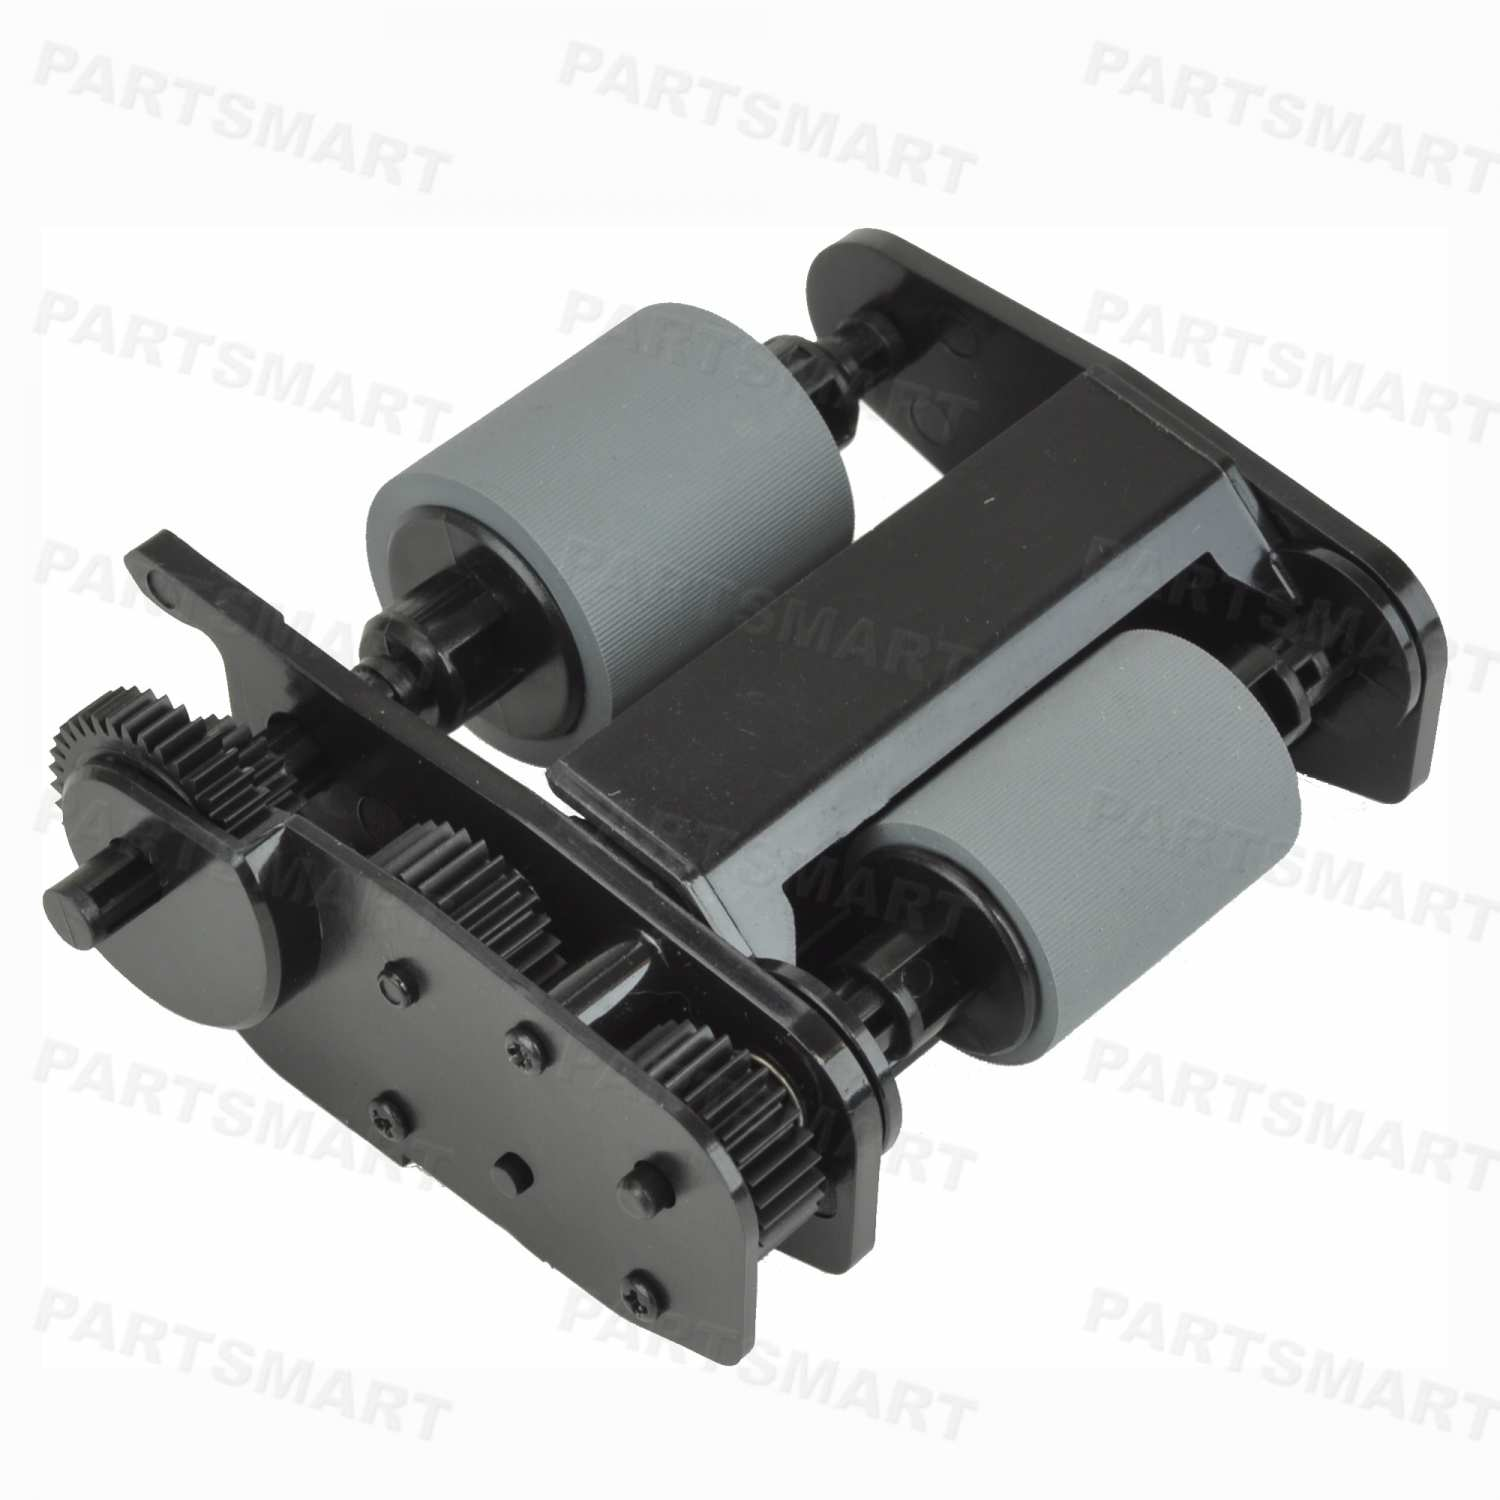 5851-3580-FR ADF Feed Roller Only for HP LaserJet 3050, LaserJet M1522